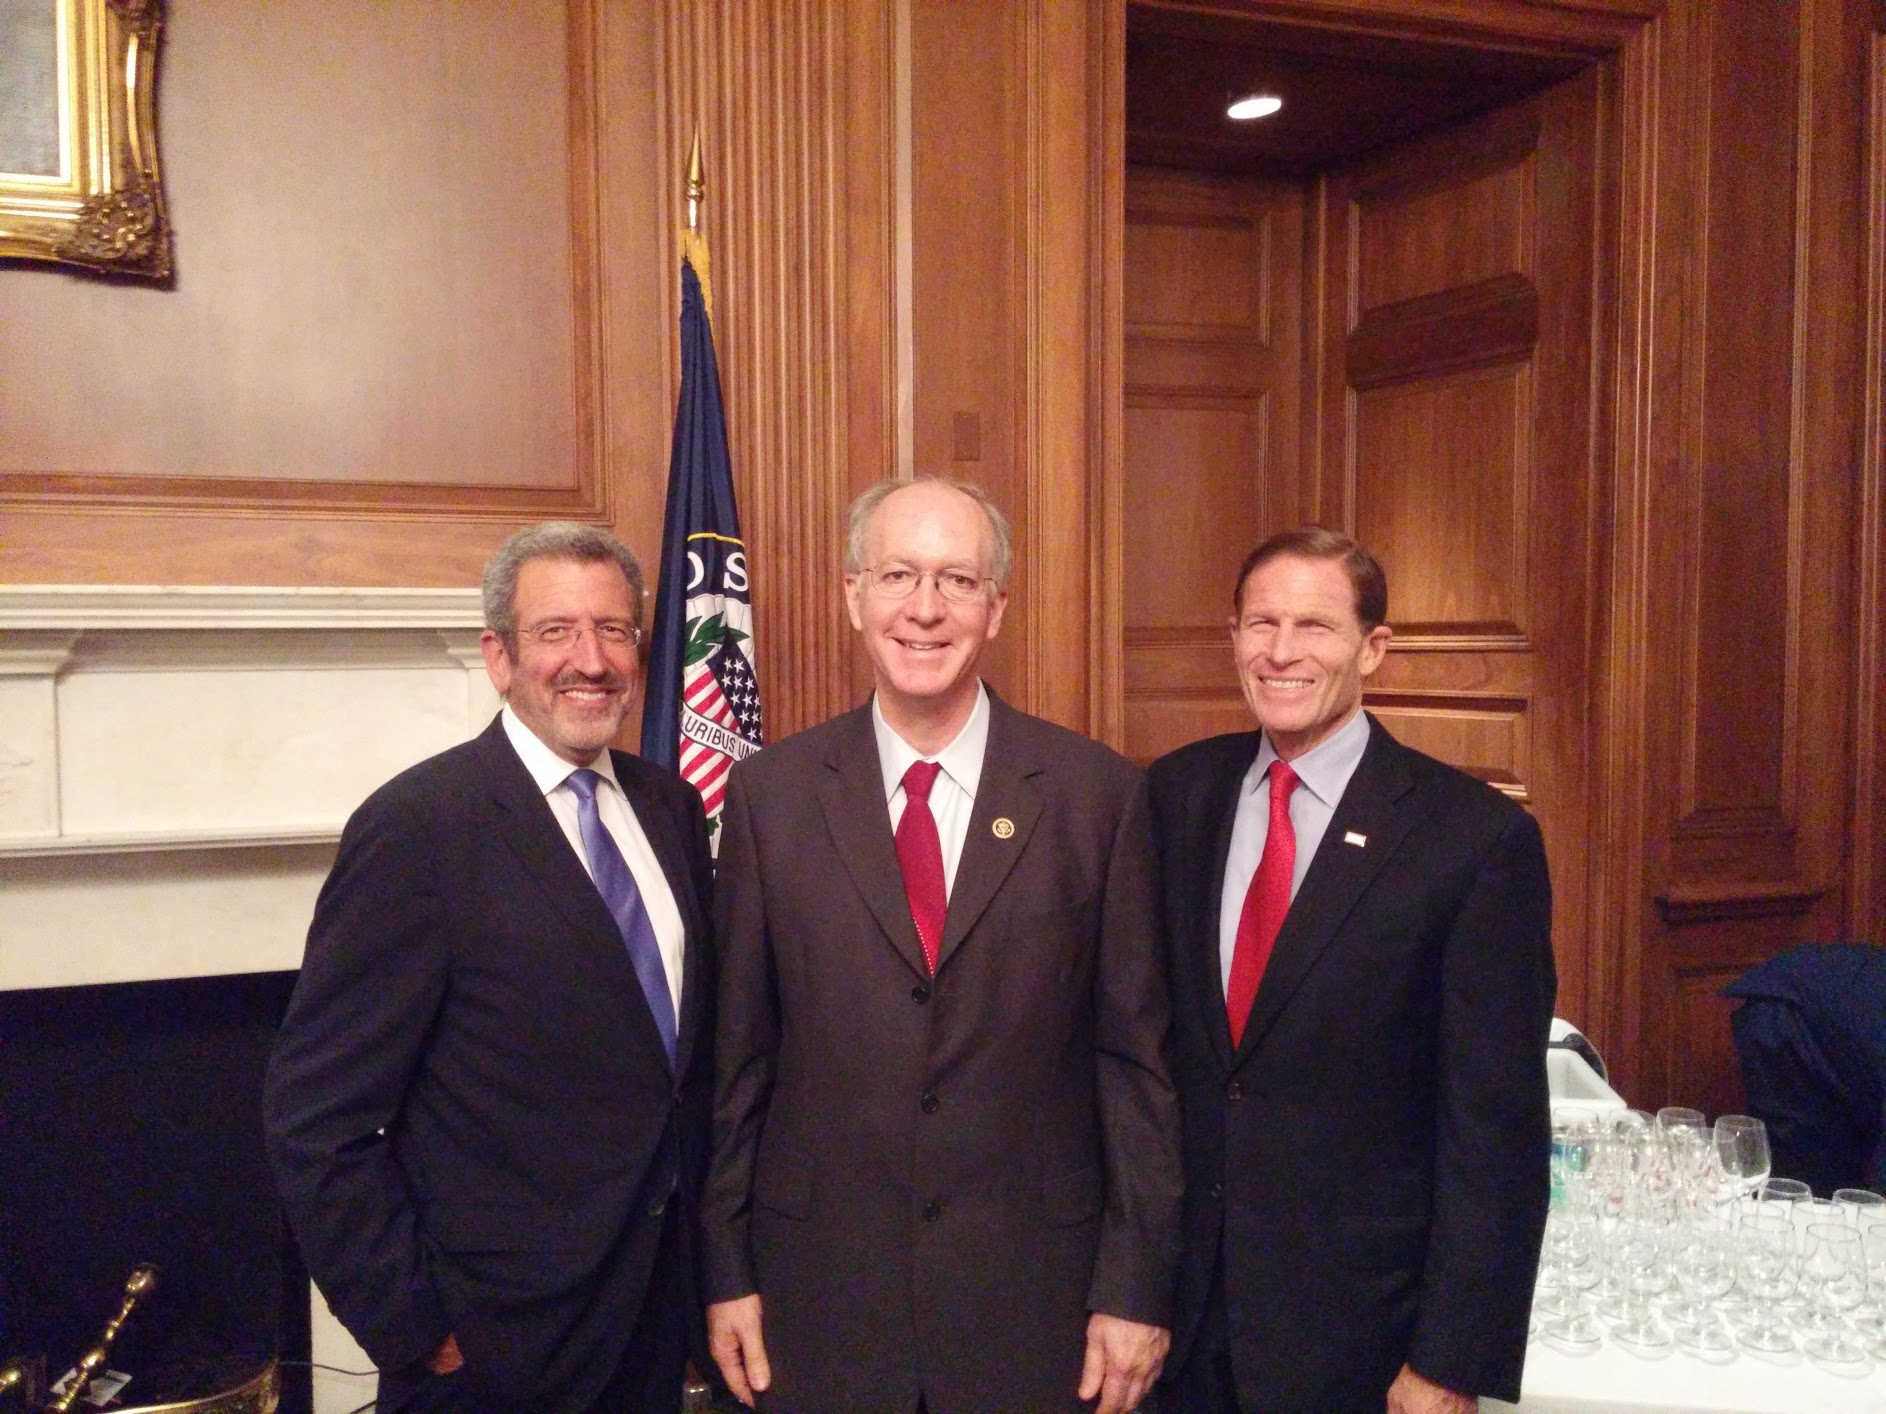 From right to left: Senator Blumenthal, Representative Foster, and FCHEA President Morry Markowitz